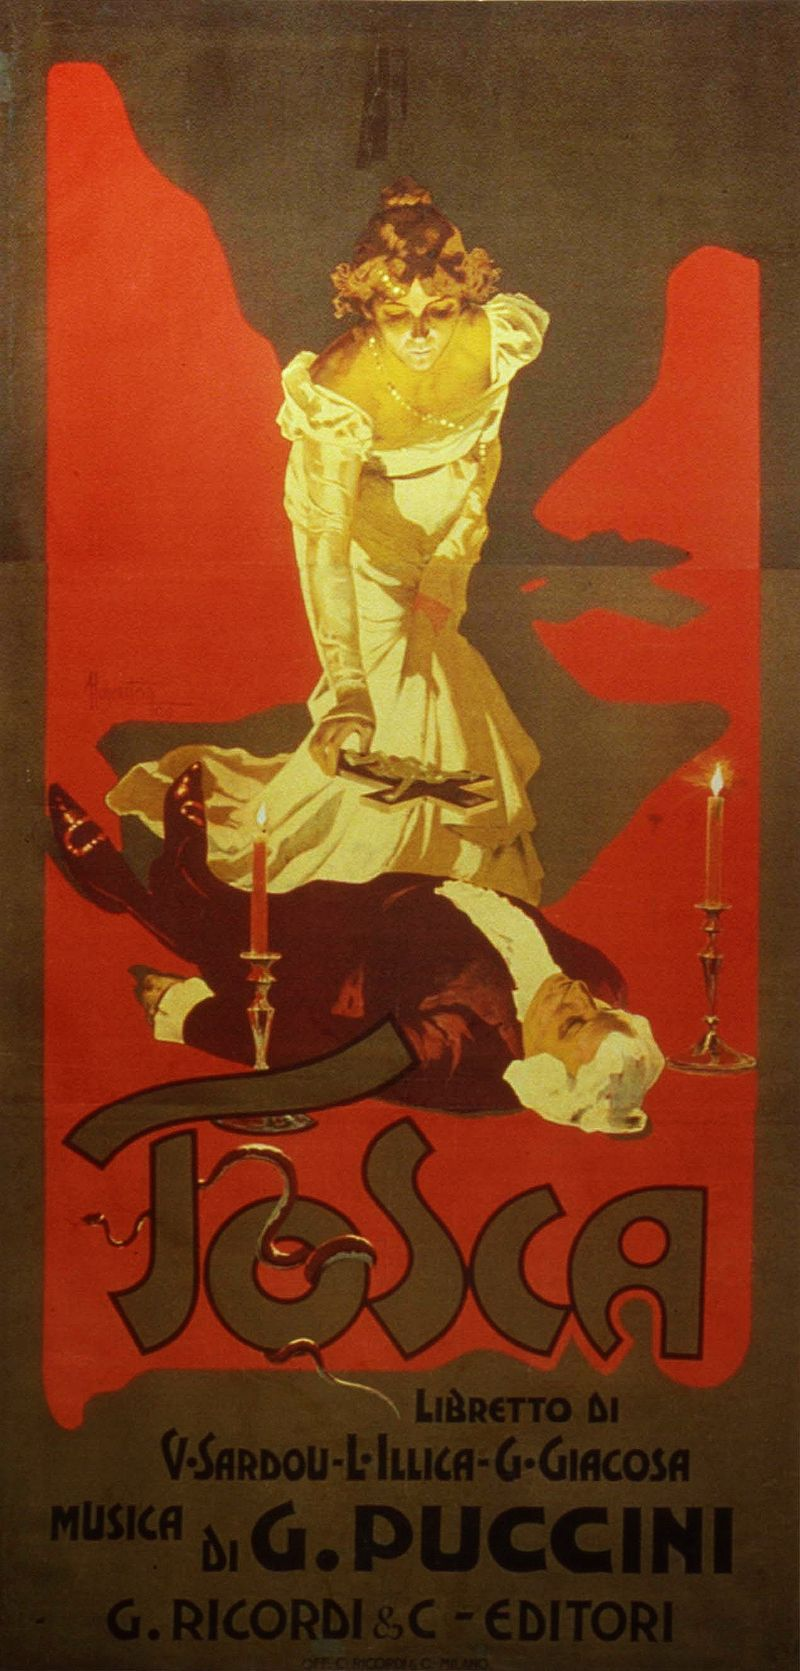 Original Tosca poster. In public domain from  Wikepedia .